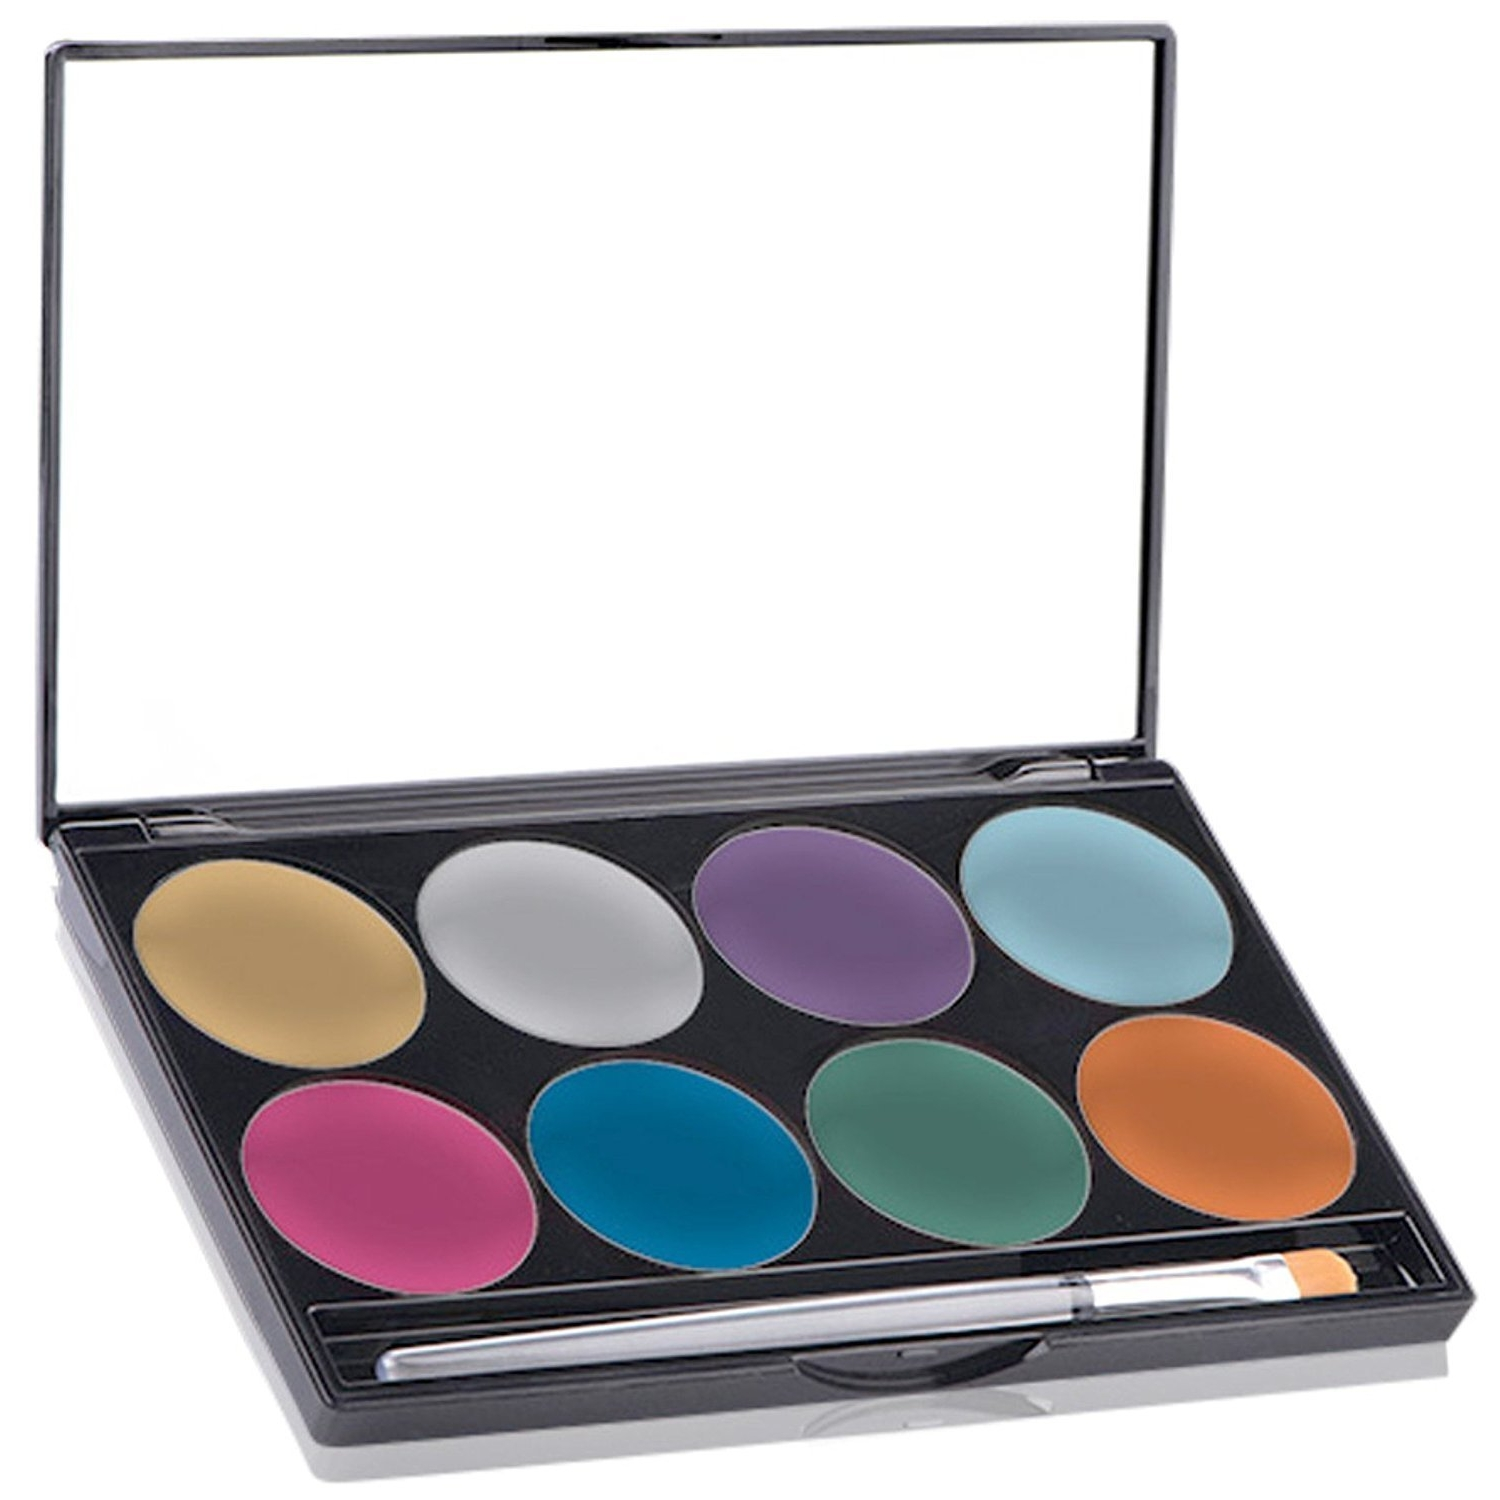 Mehron Paradise Brilliant Face Paint Palette (8 Colors)